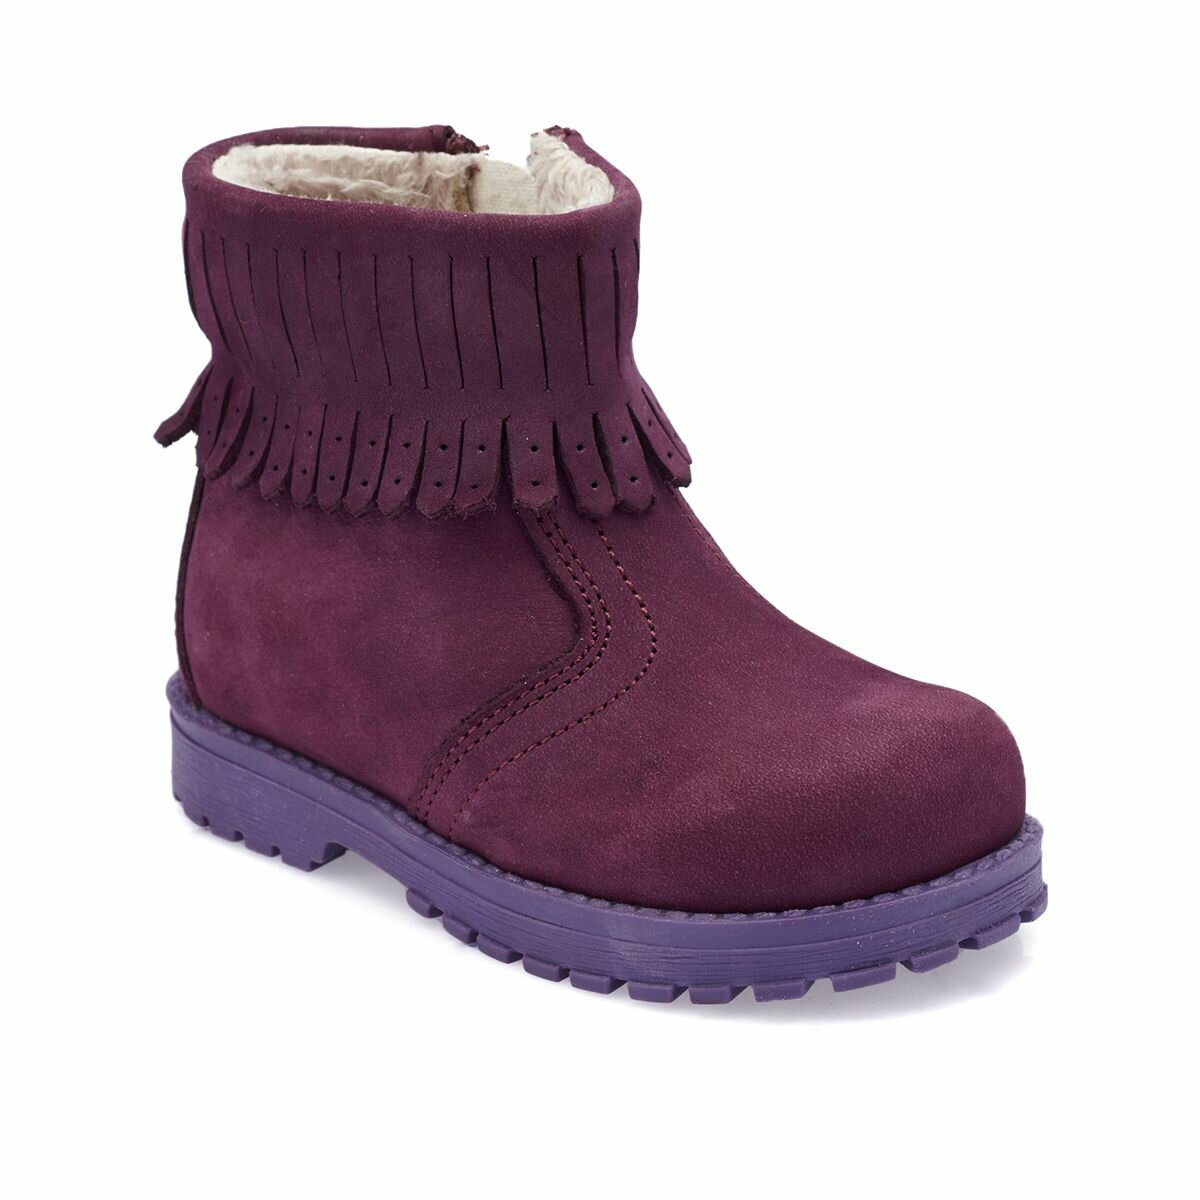 FLO 82.510776.B Purple Female Child Boots Polaris